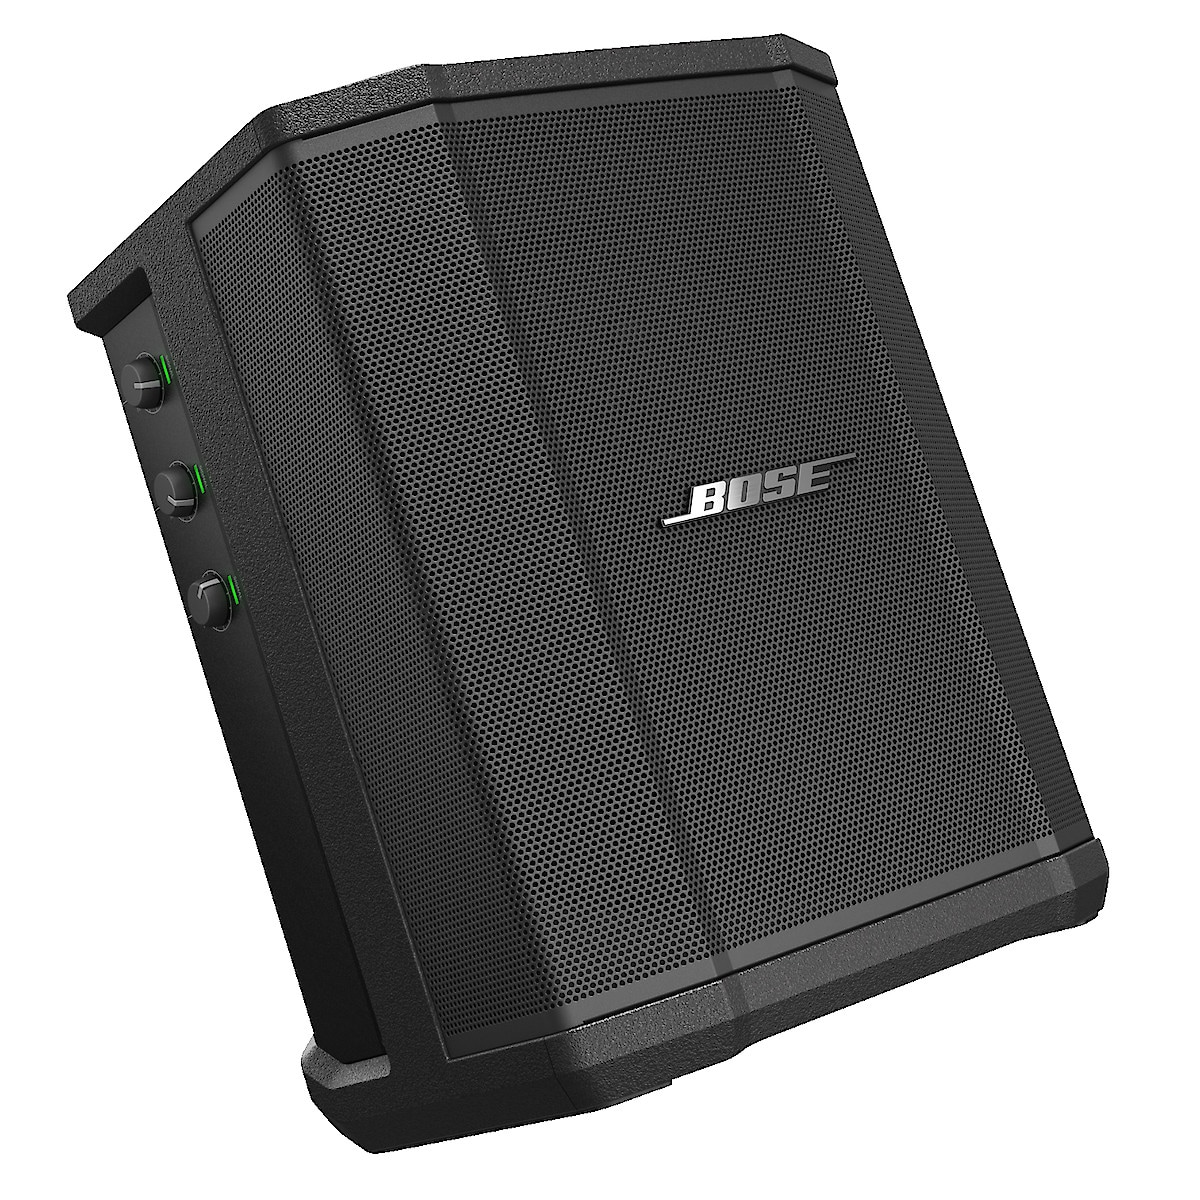 Högtalare Bose S1 PRO System